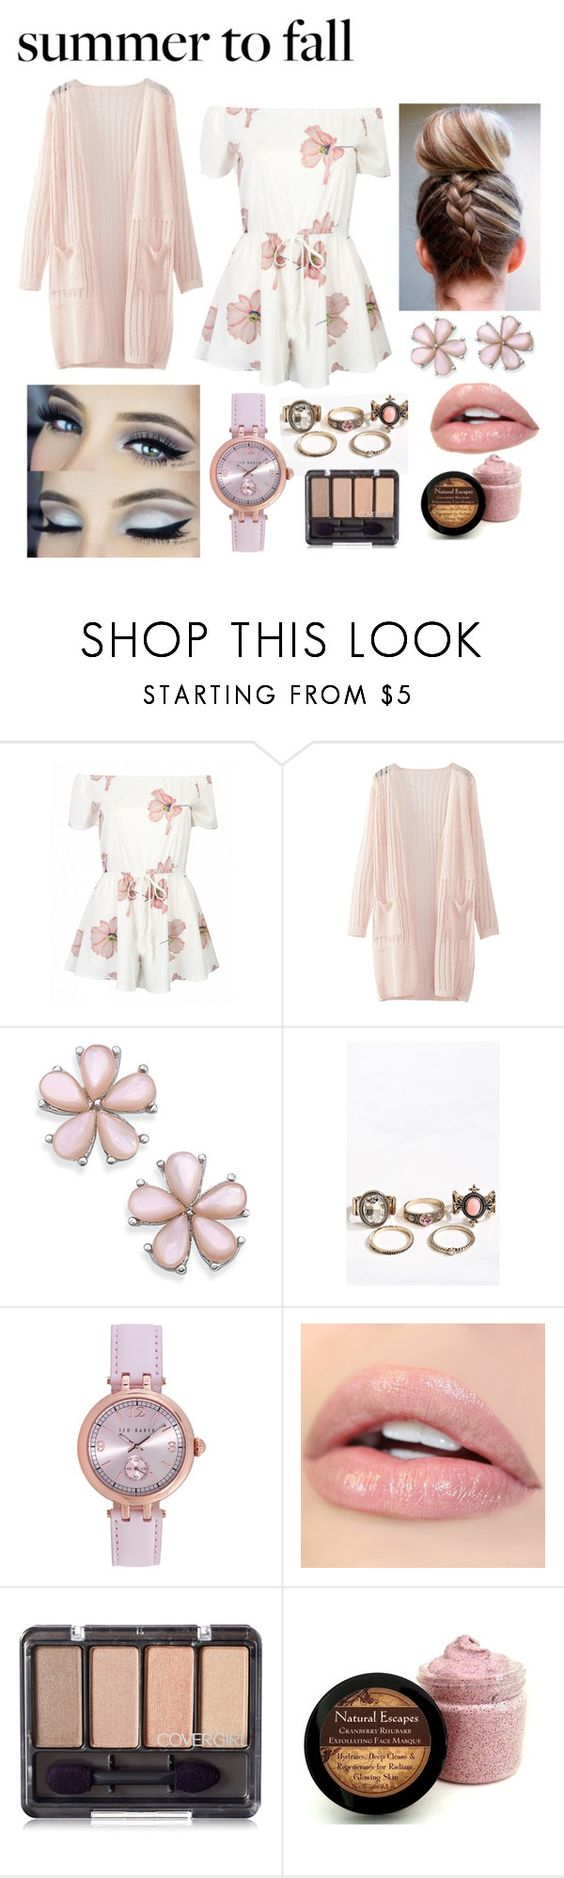 """Pink 💗💗"" by shelbs1234 ❤ liked on Polyvore featuring WithChic and Ted Baker"